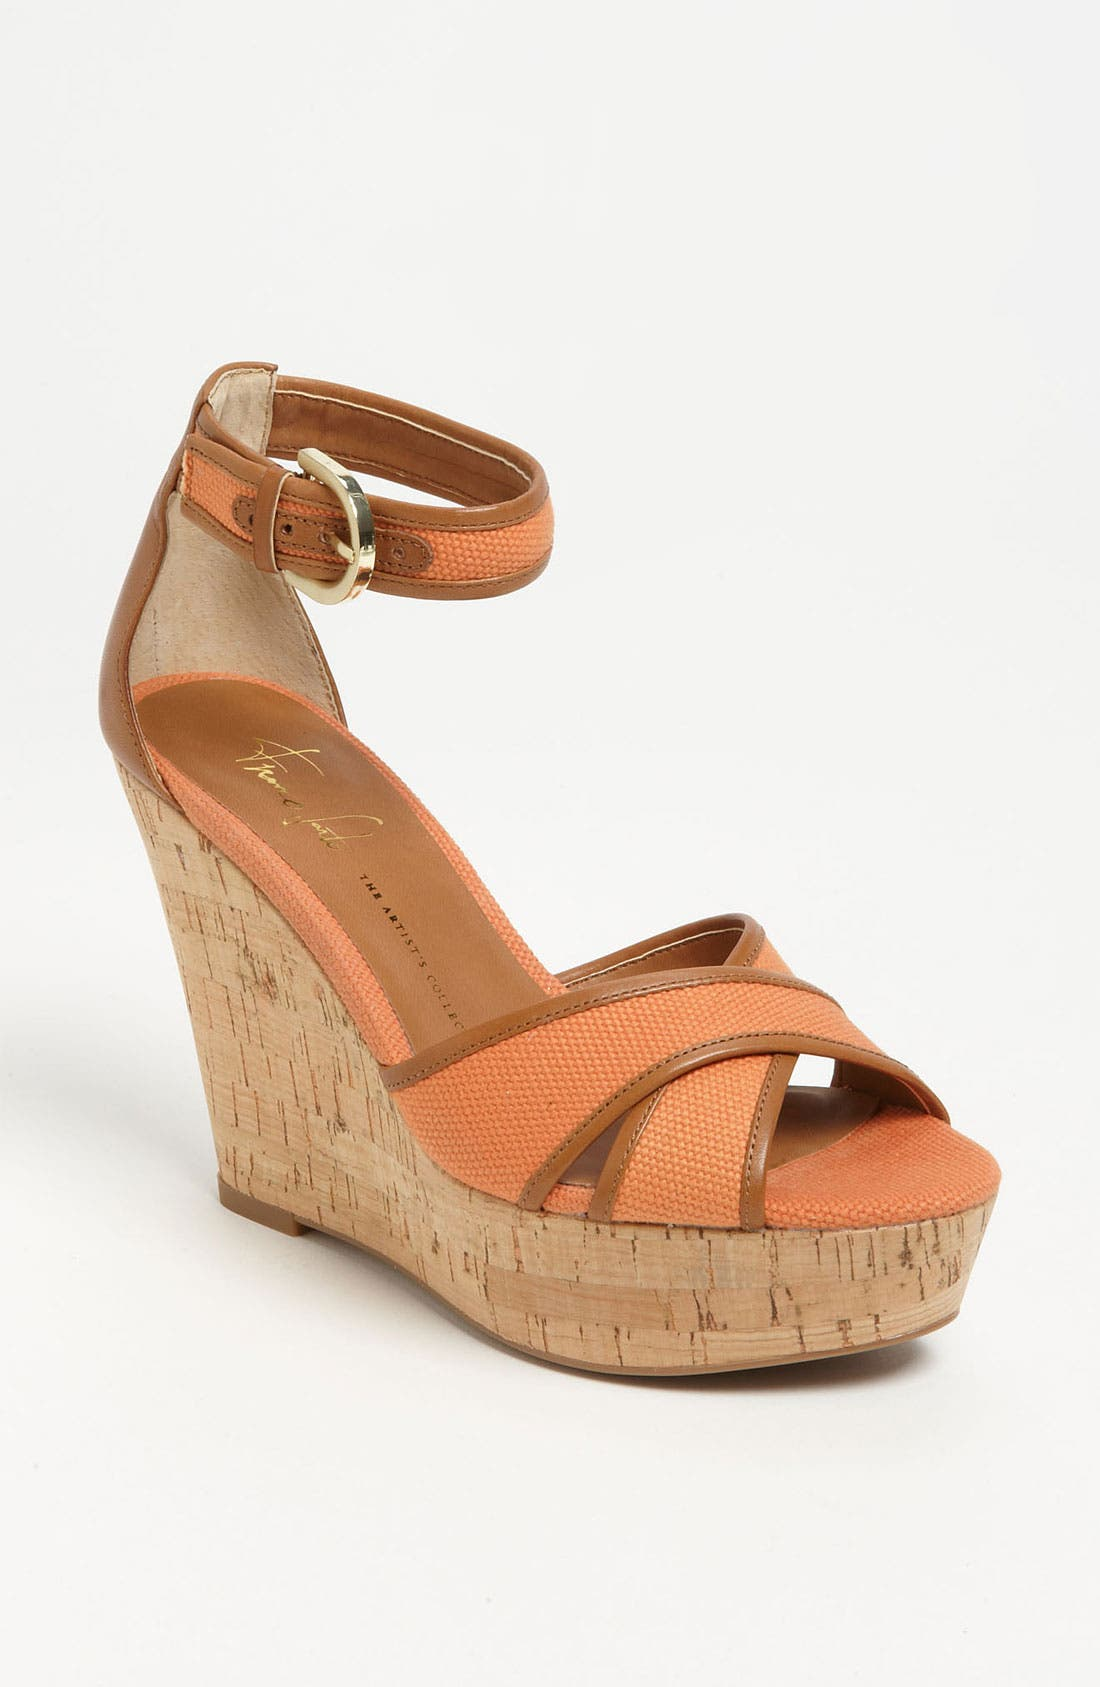 Alternate Image 1 Selected - Franco Sarto 'Raina' Wedge